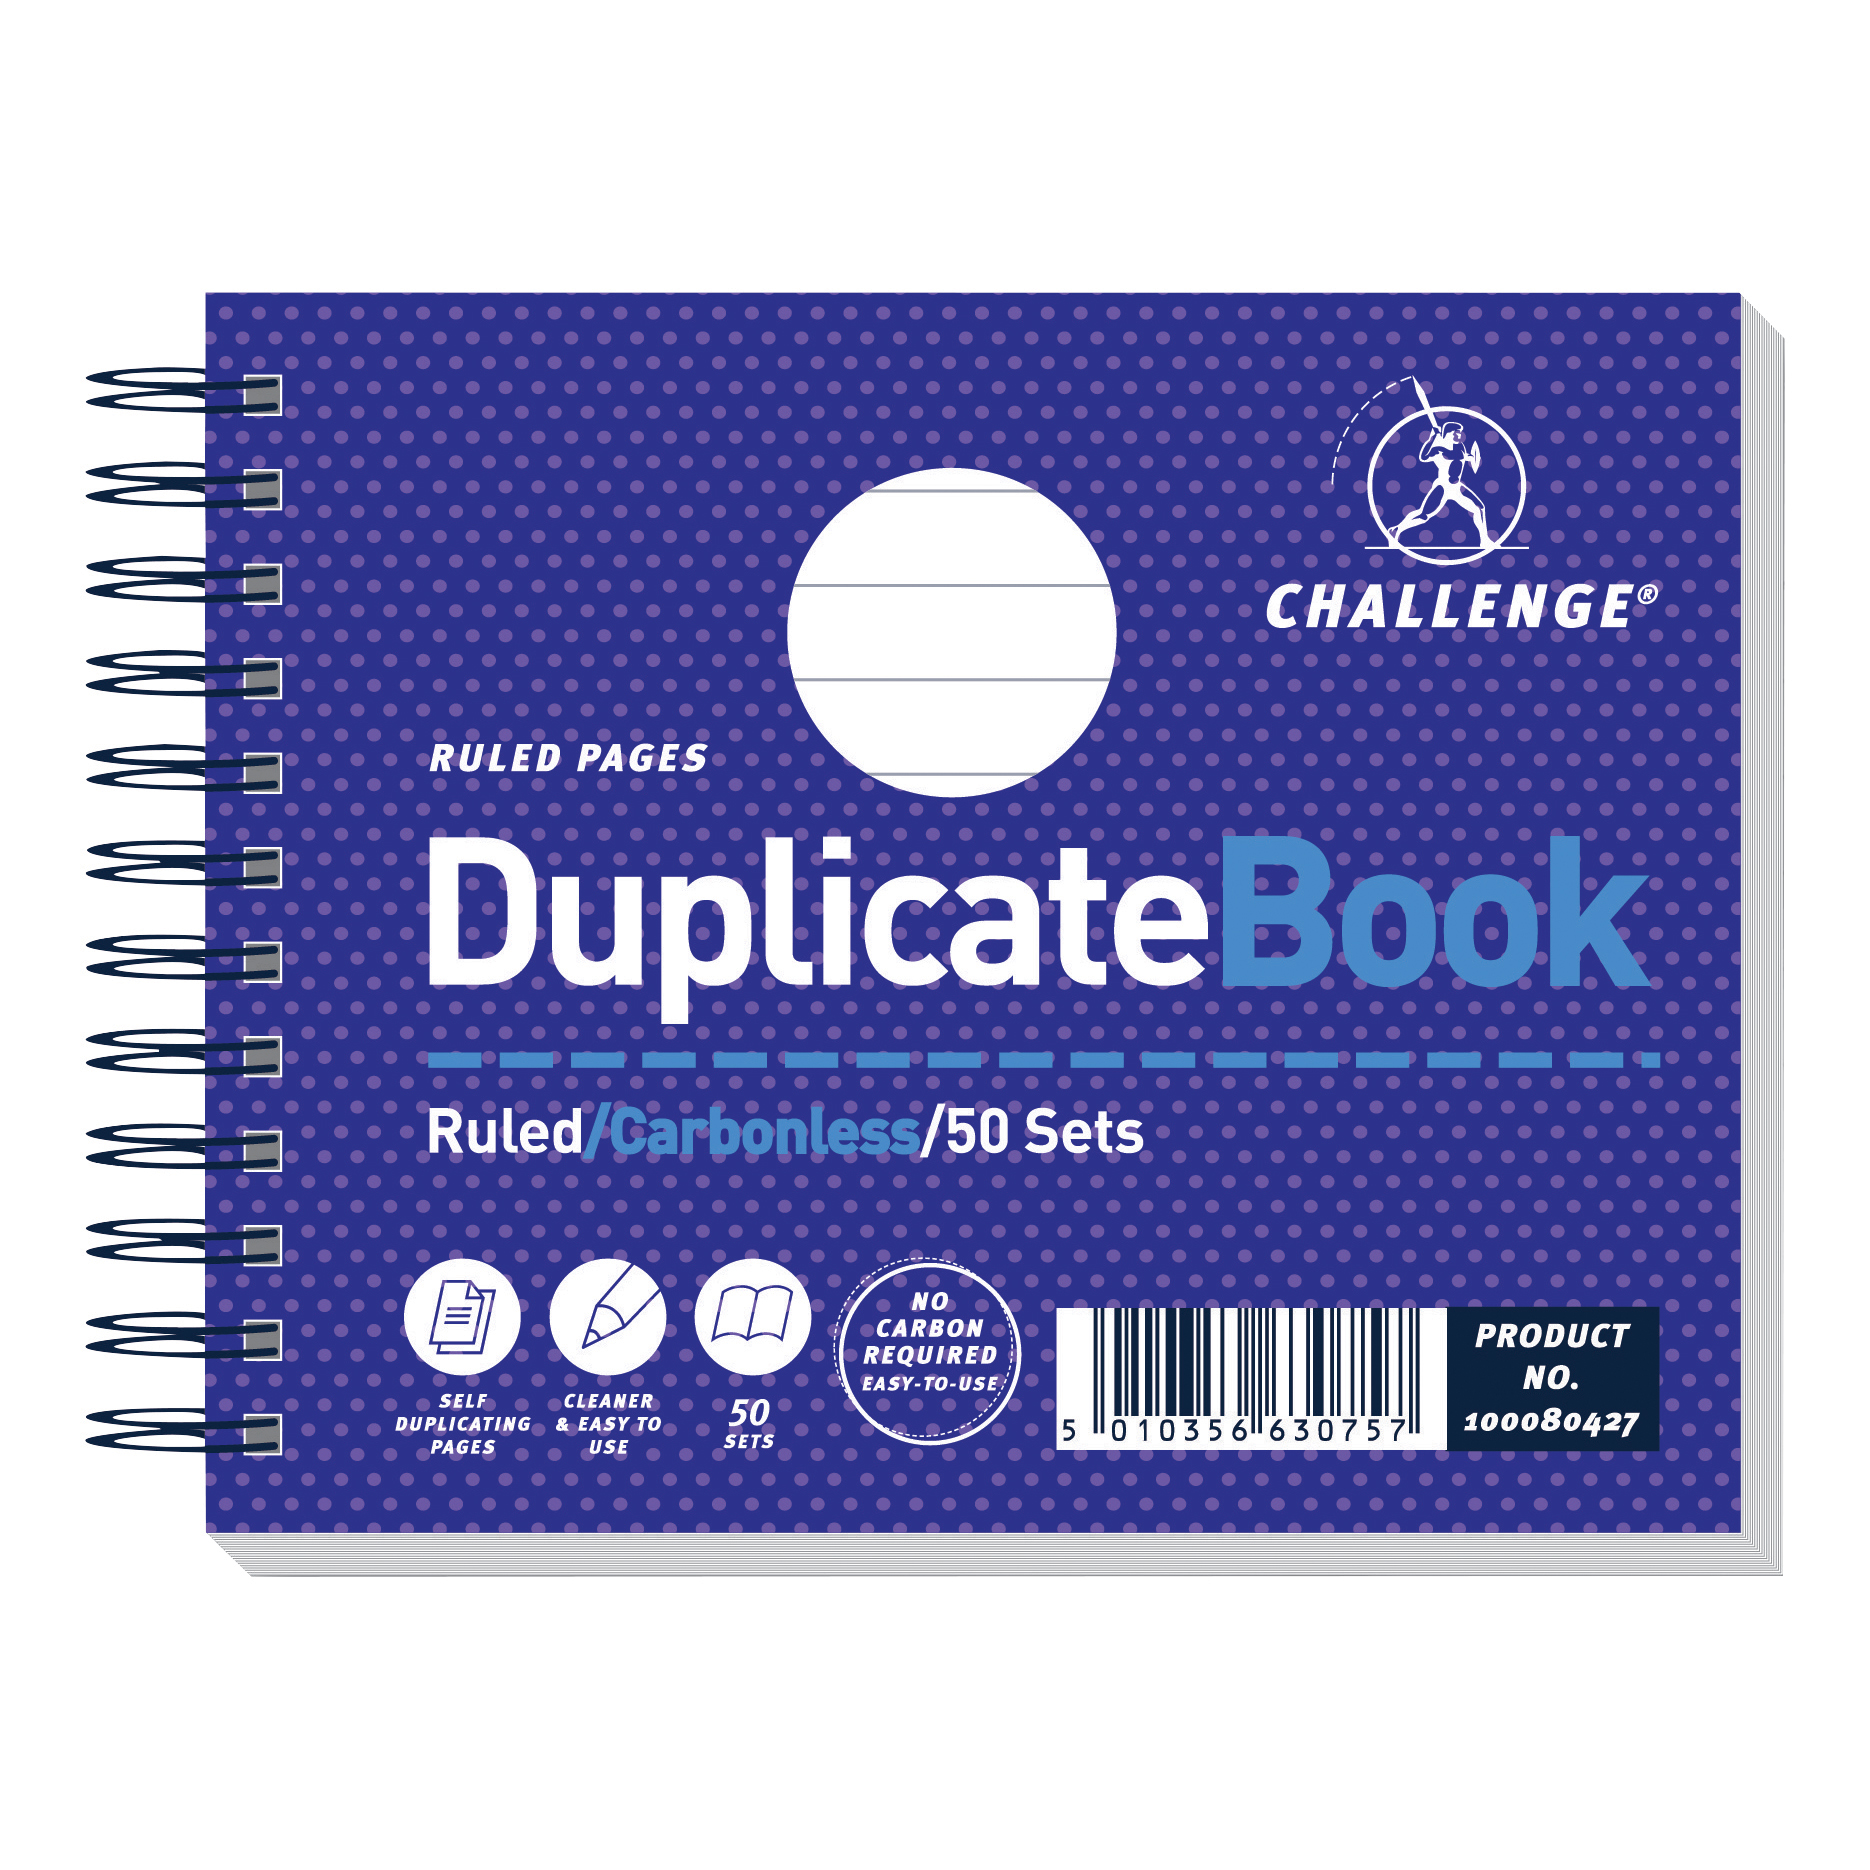 Challenge Duplicate Book Carbonless Wirebound Ruled 50 Sets 105x130mm Ref 100080427 Pack 5